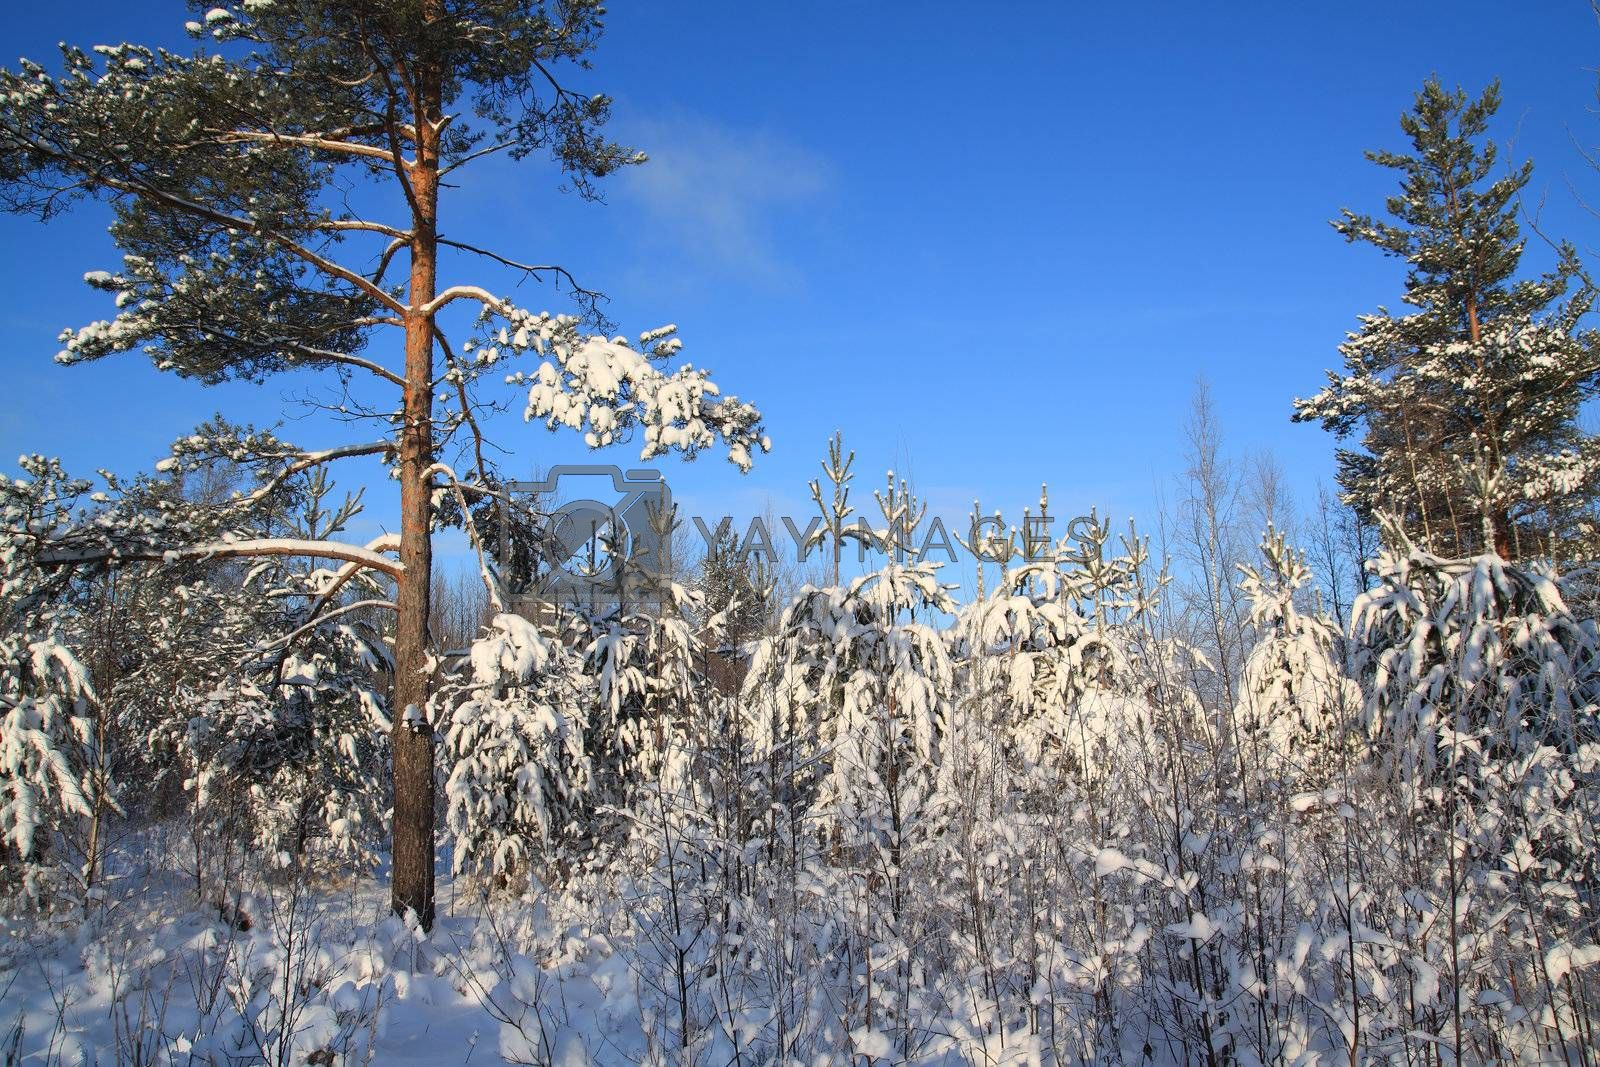 pines in snow on celestial background